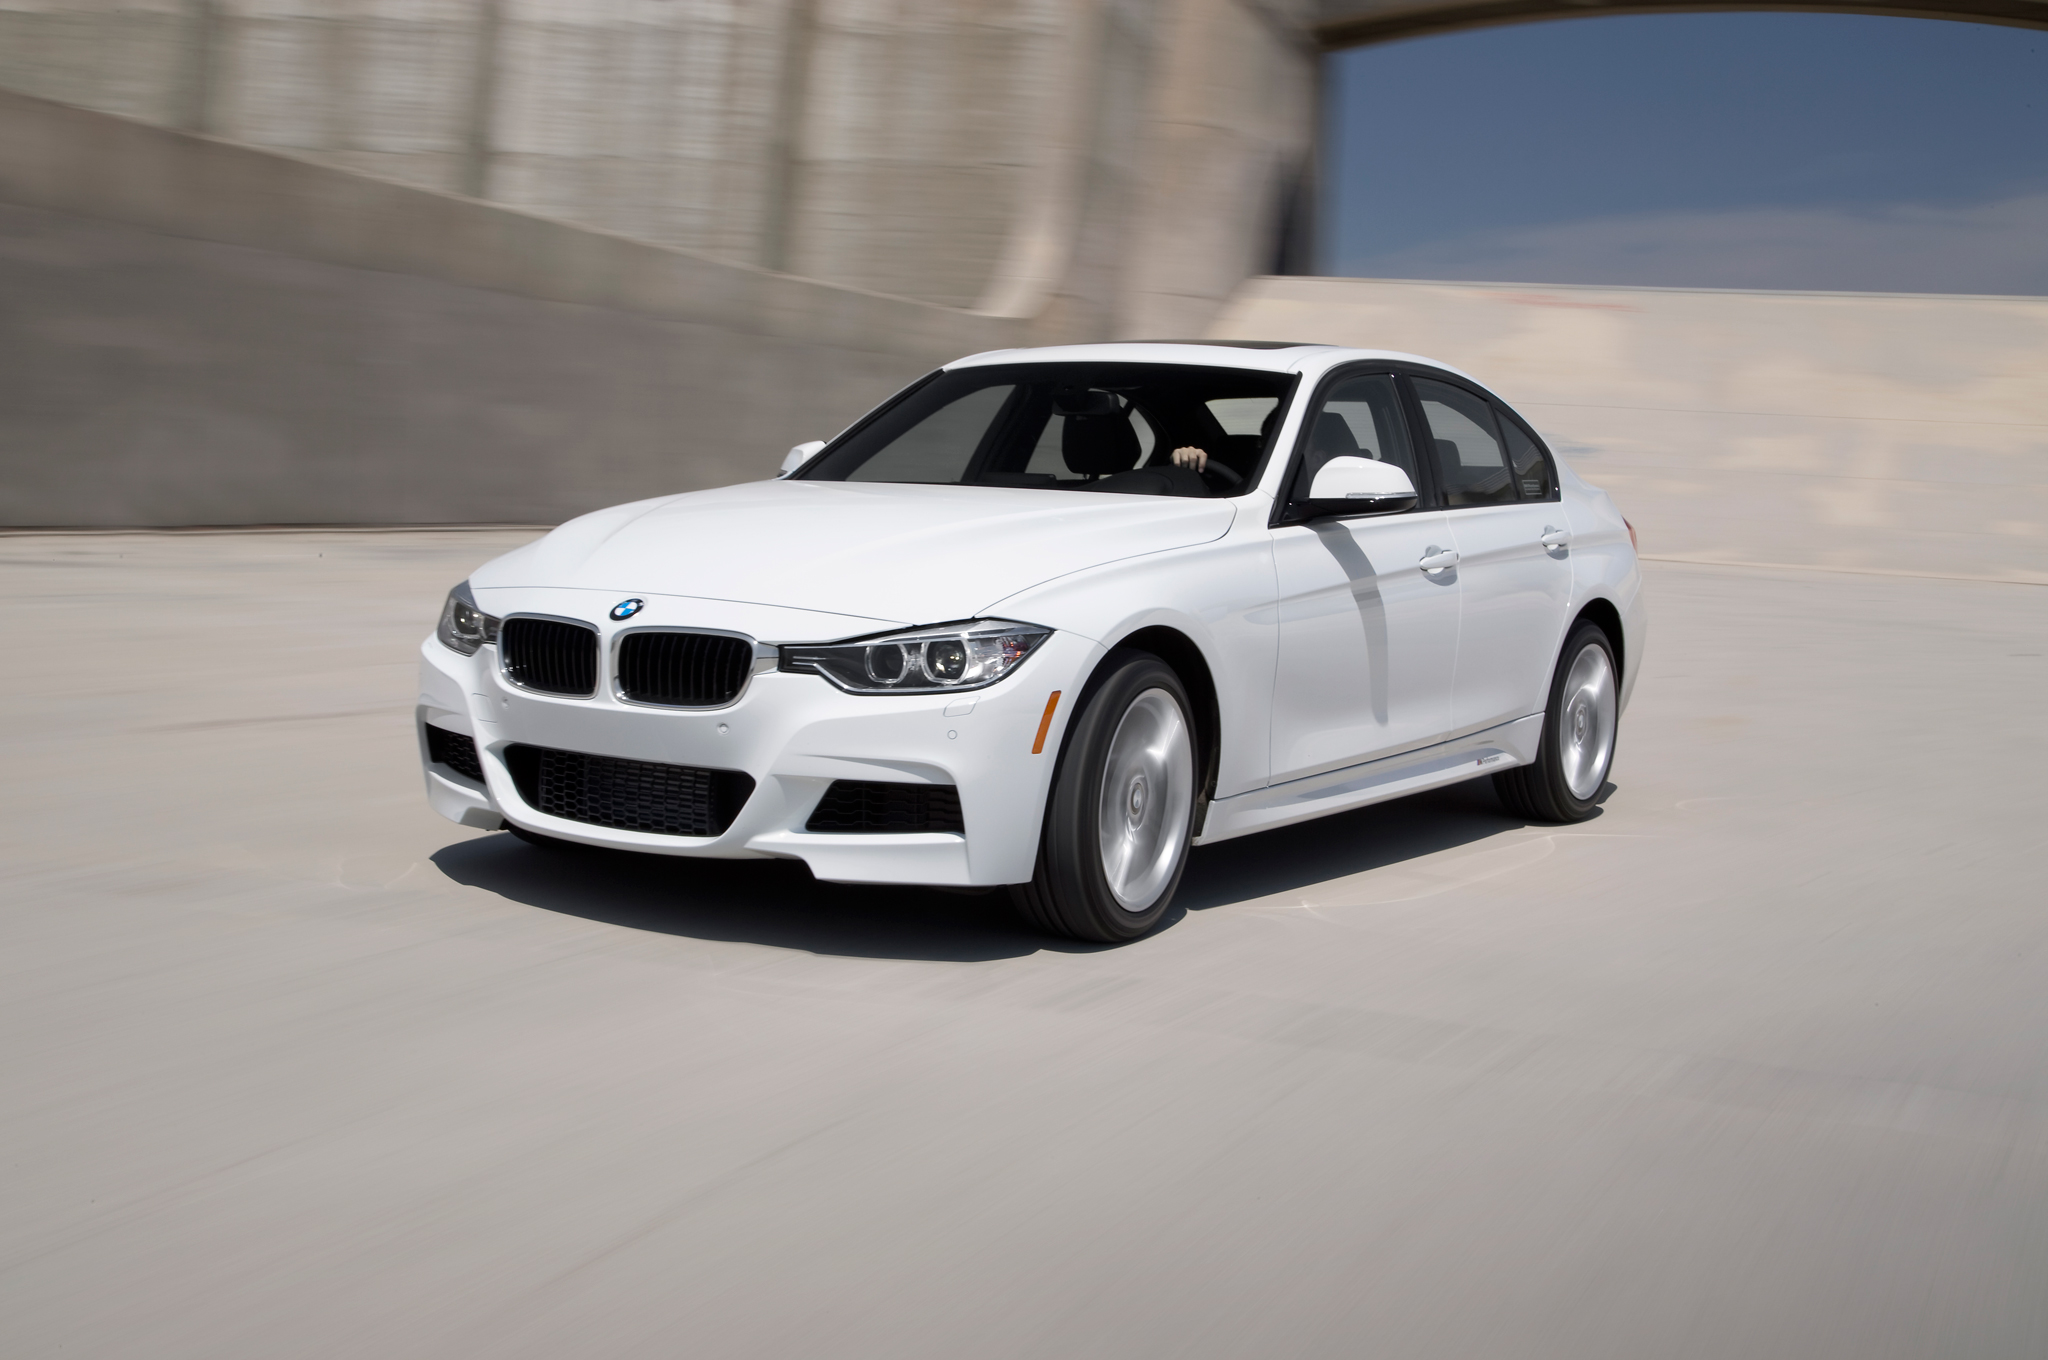 bmw f30 335i xdrive with m performance package kit test drive autoevolution. Black Bedroom Furniture Sets. Home Design Ideas